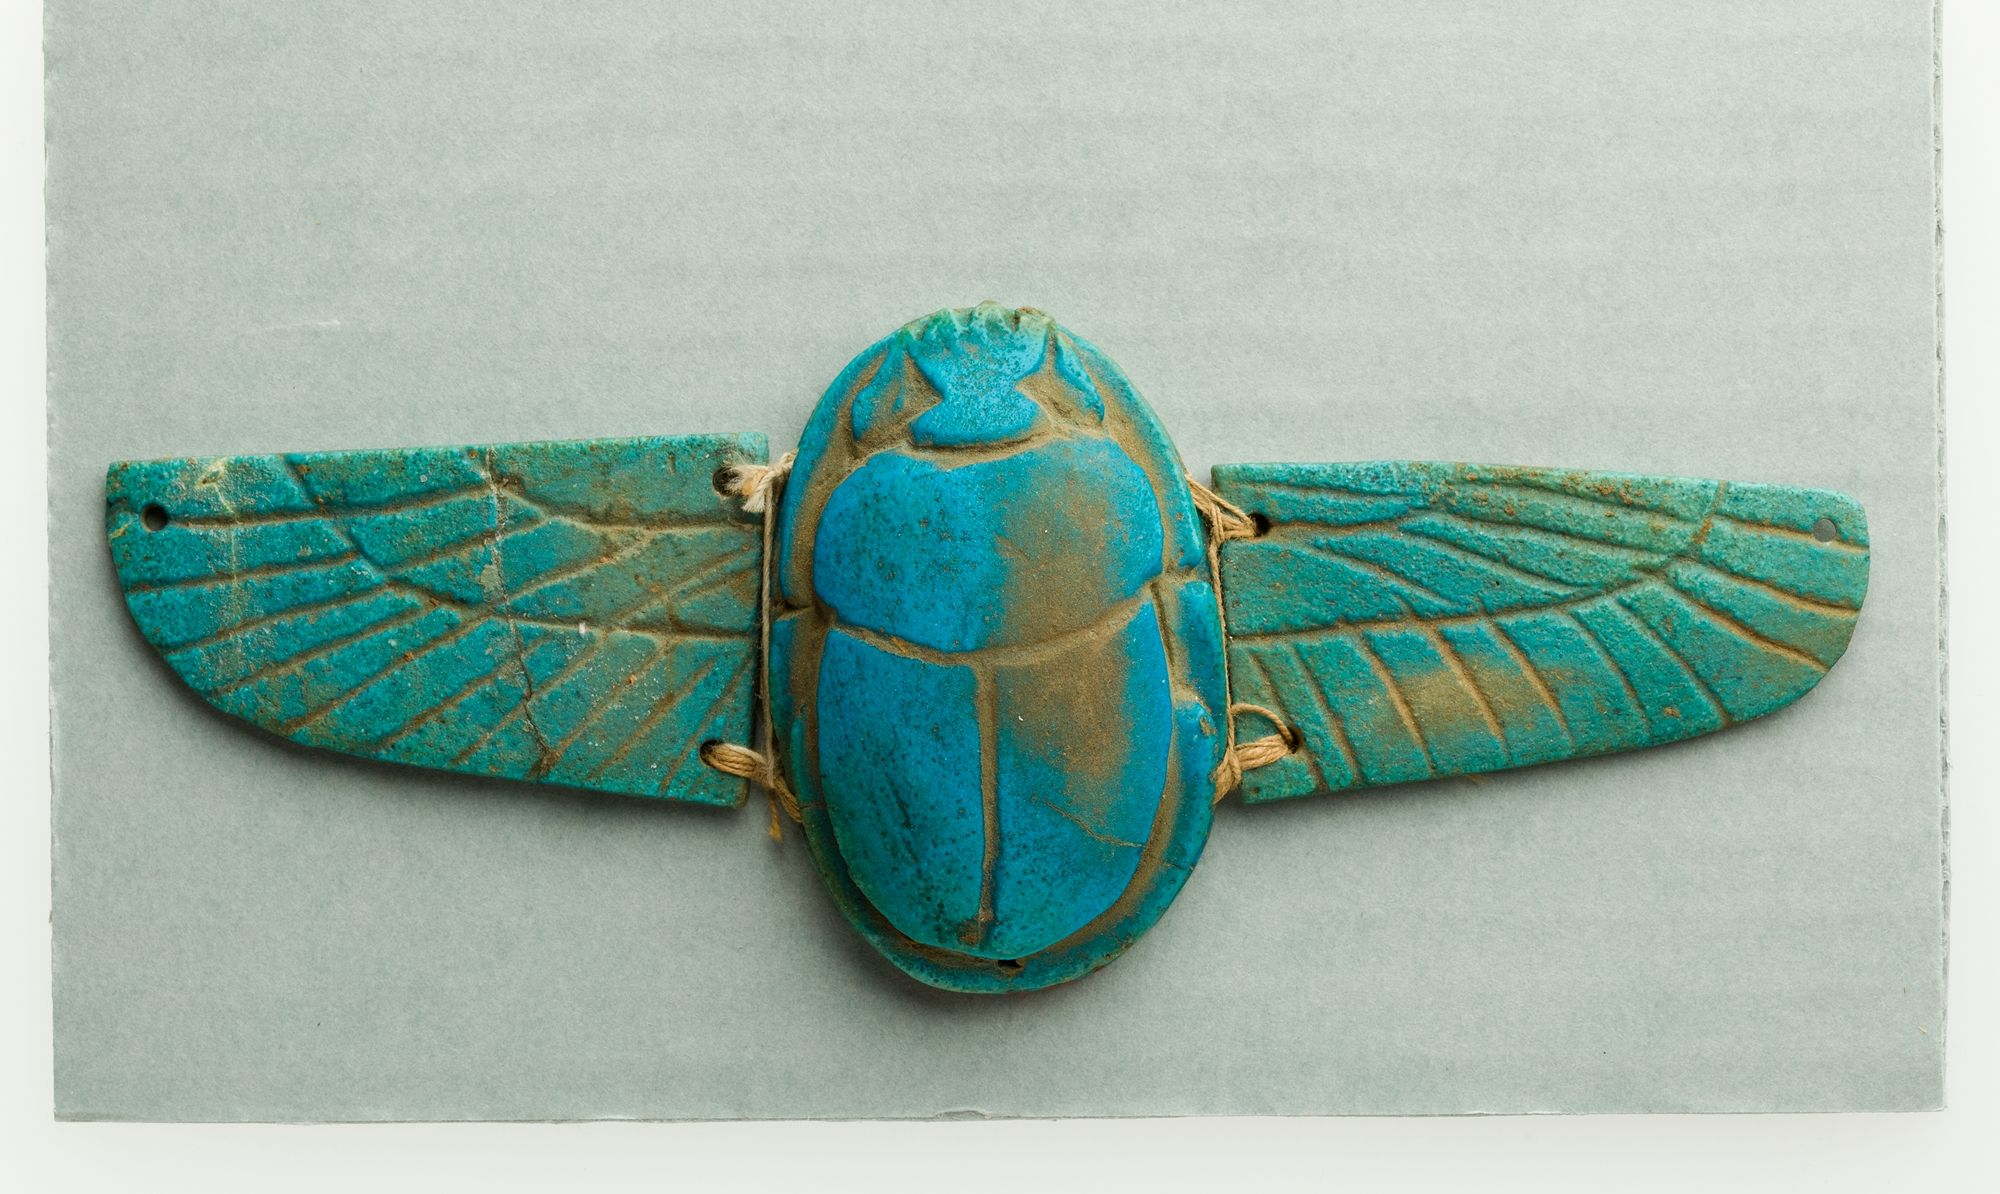 Rare Ancient Egypt Egyptian Antique Faience Mascot Amulet Late Period Antiques 672–332bc Quality First